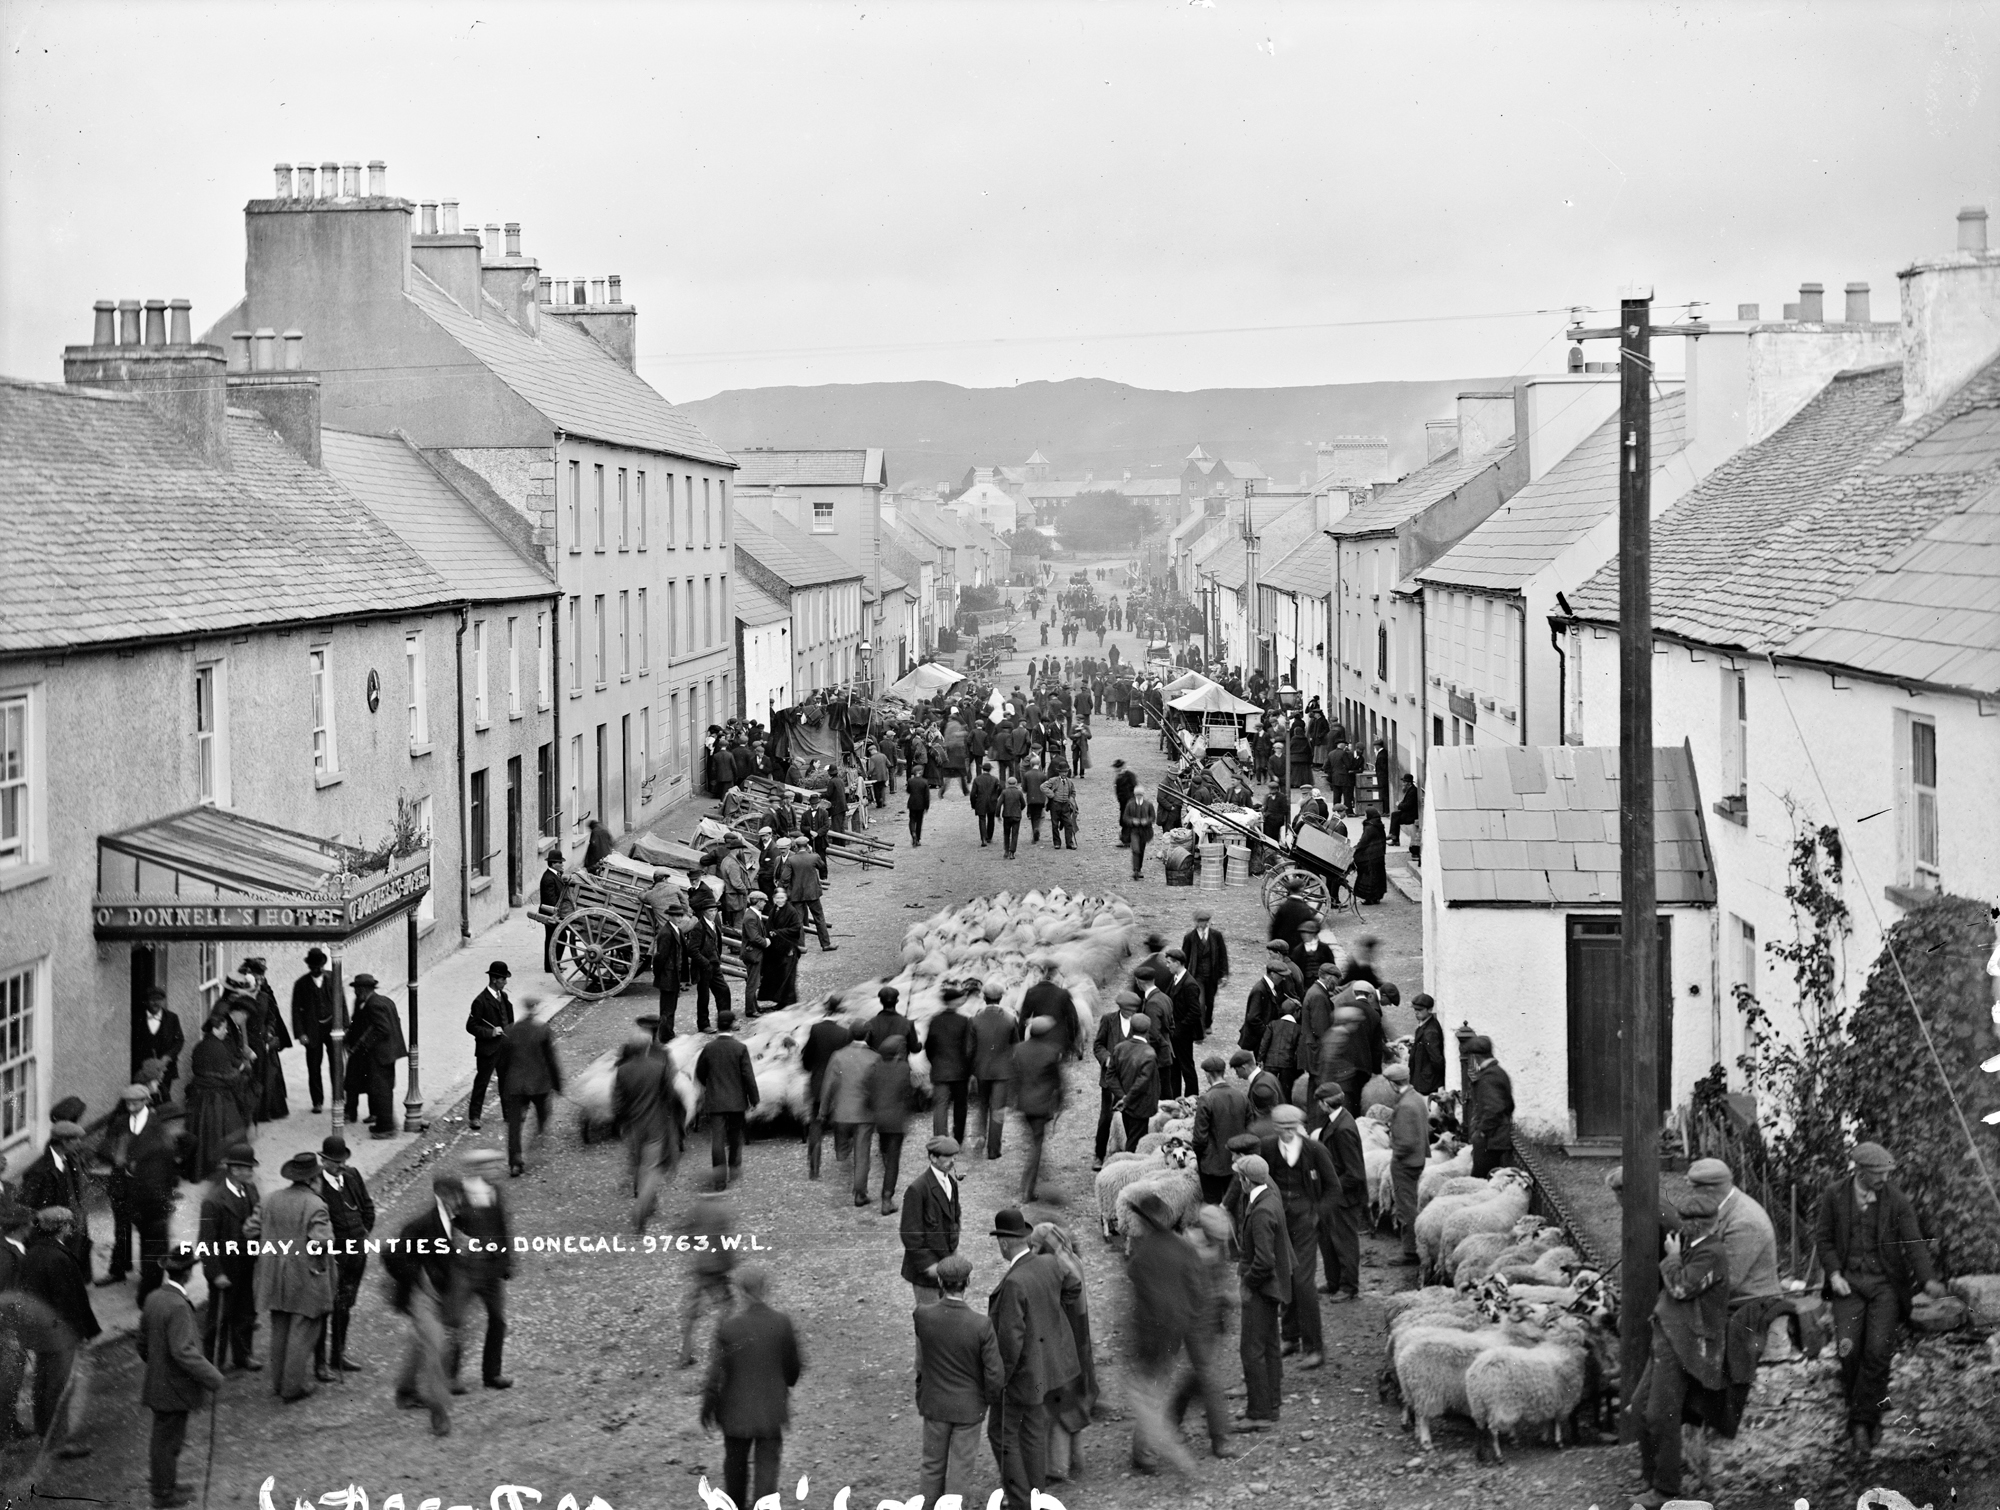 Fair Day, Glenties, Co. Donegal